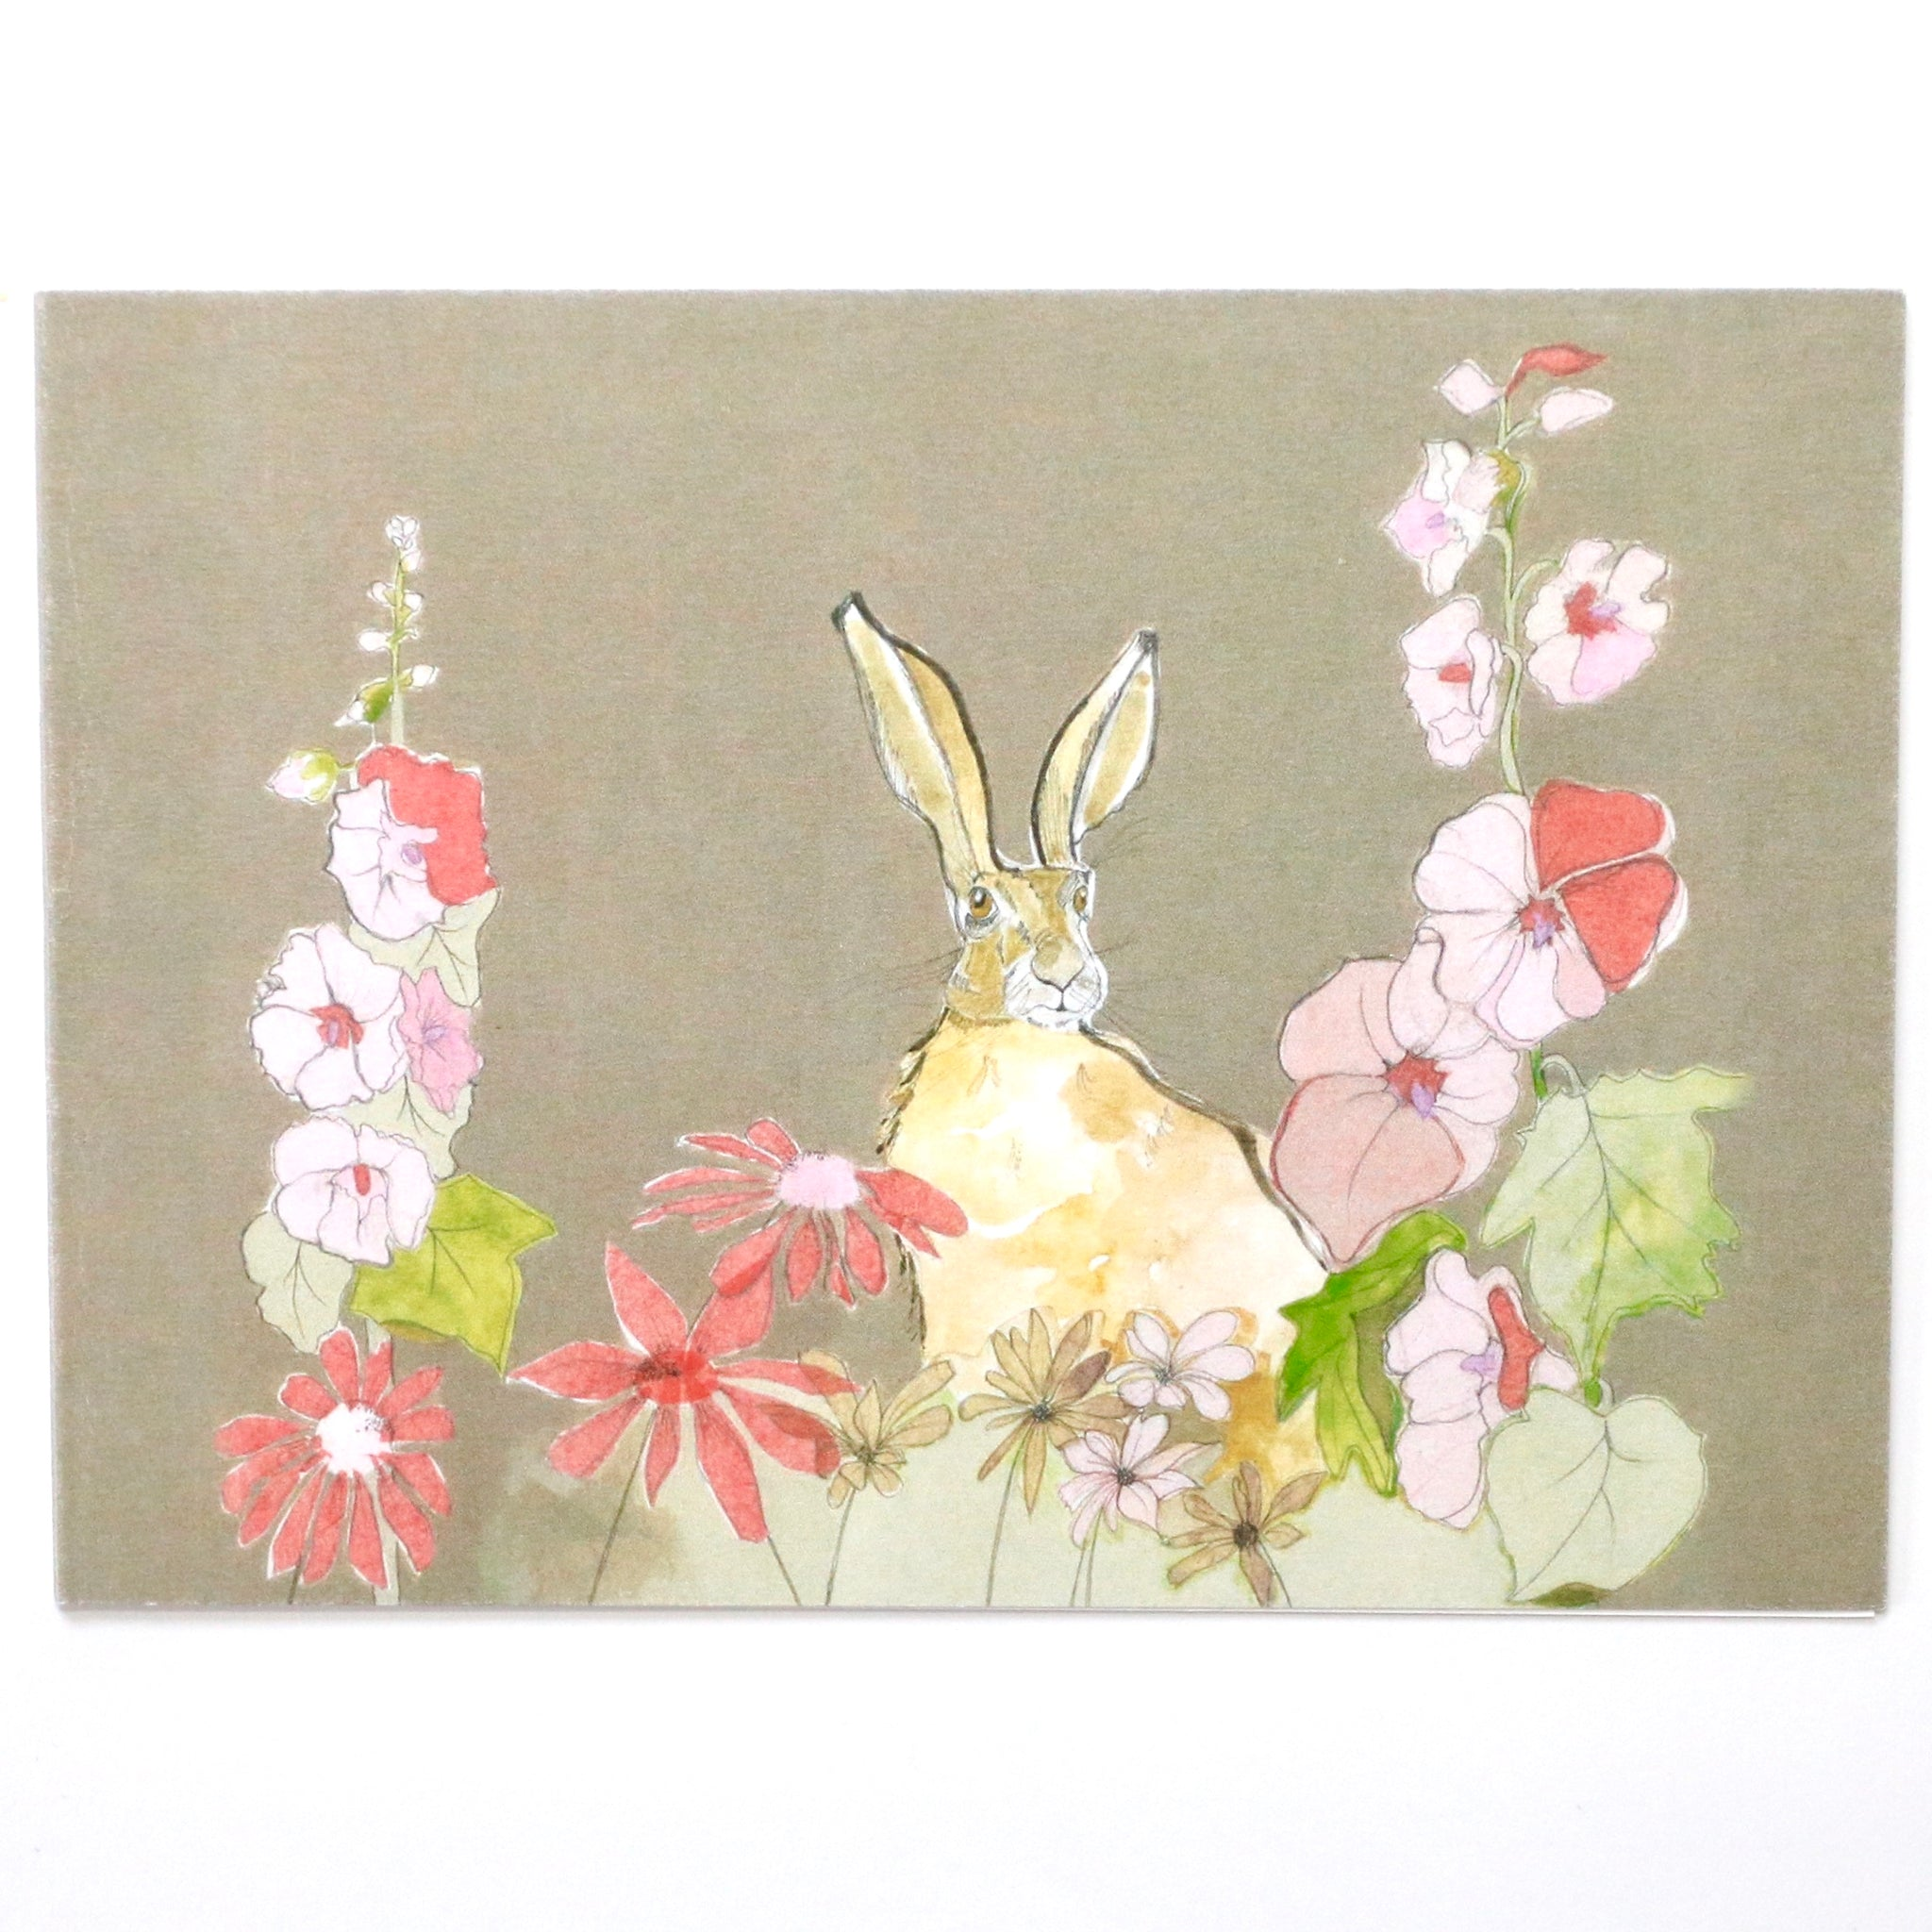 Holly Hare wild card